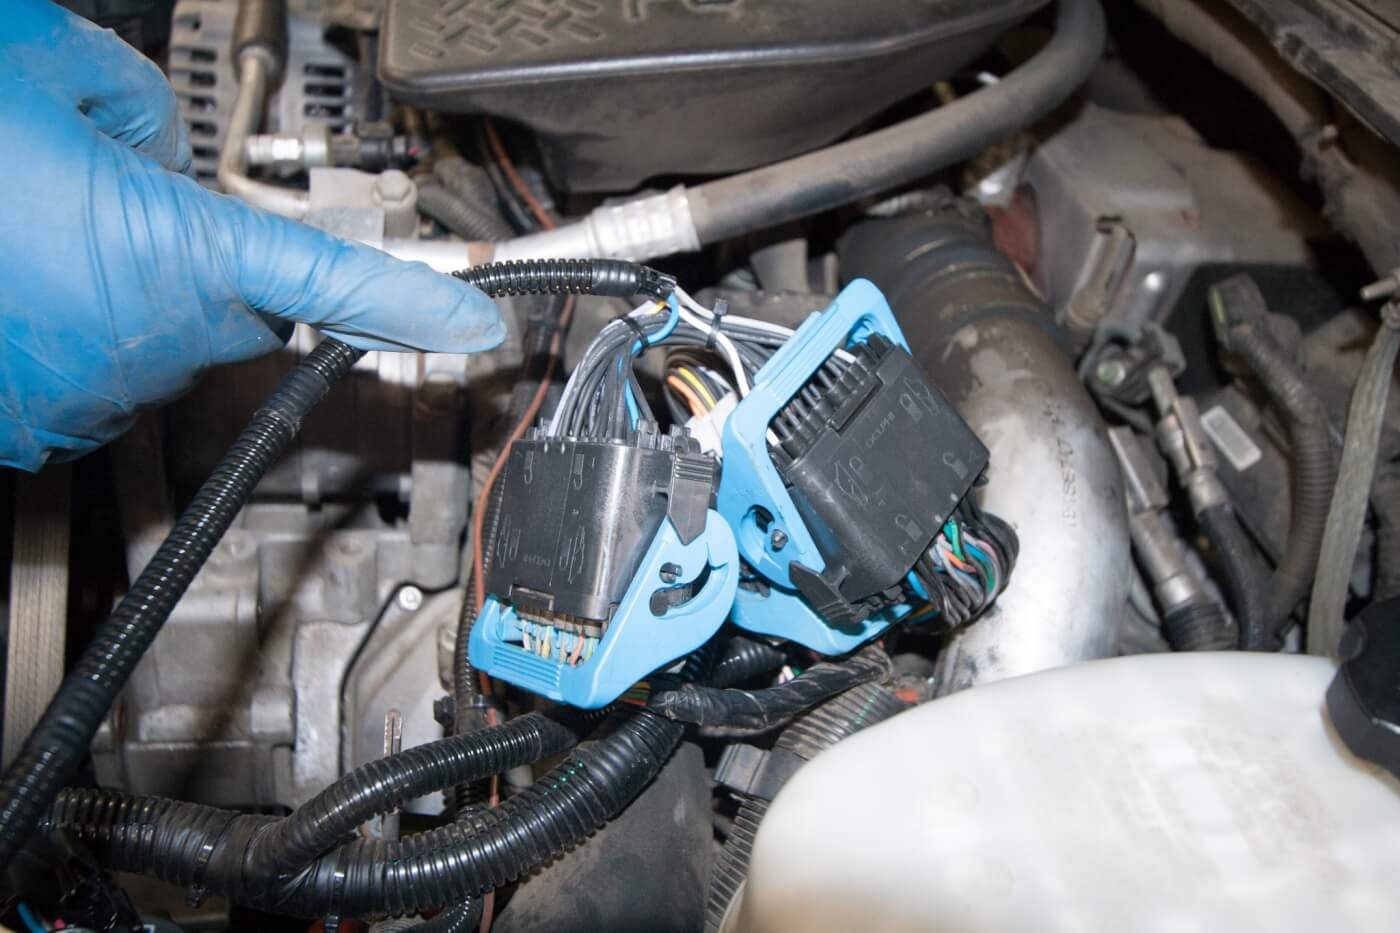 11. Don't forget to plug the main SpeedBrake harness cables into the appropriate OEM plugs. The quality of the Banks connectors is unparalleled.